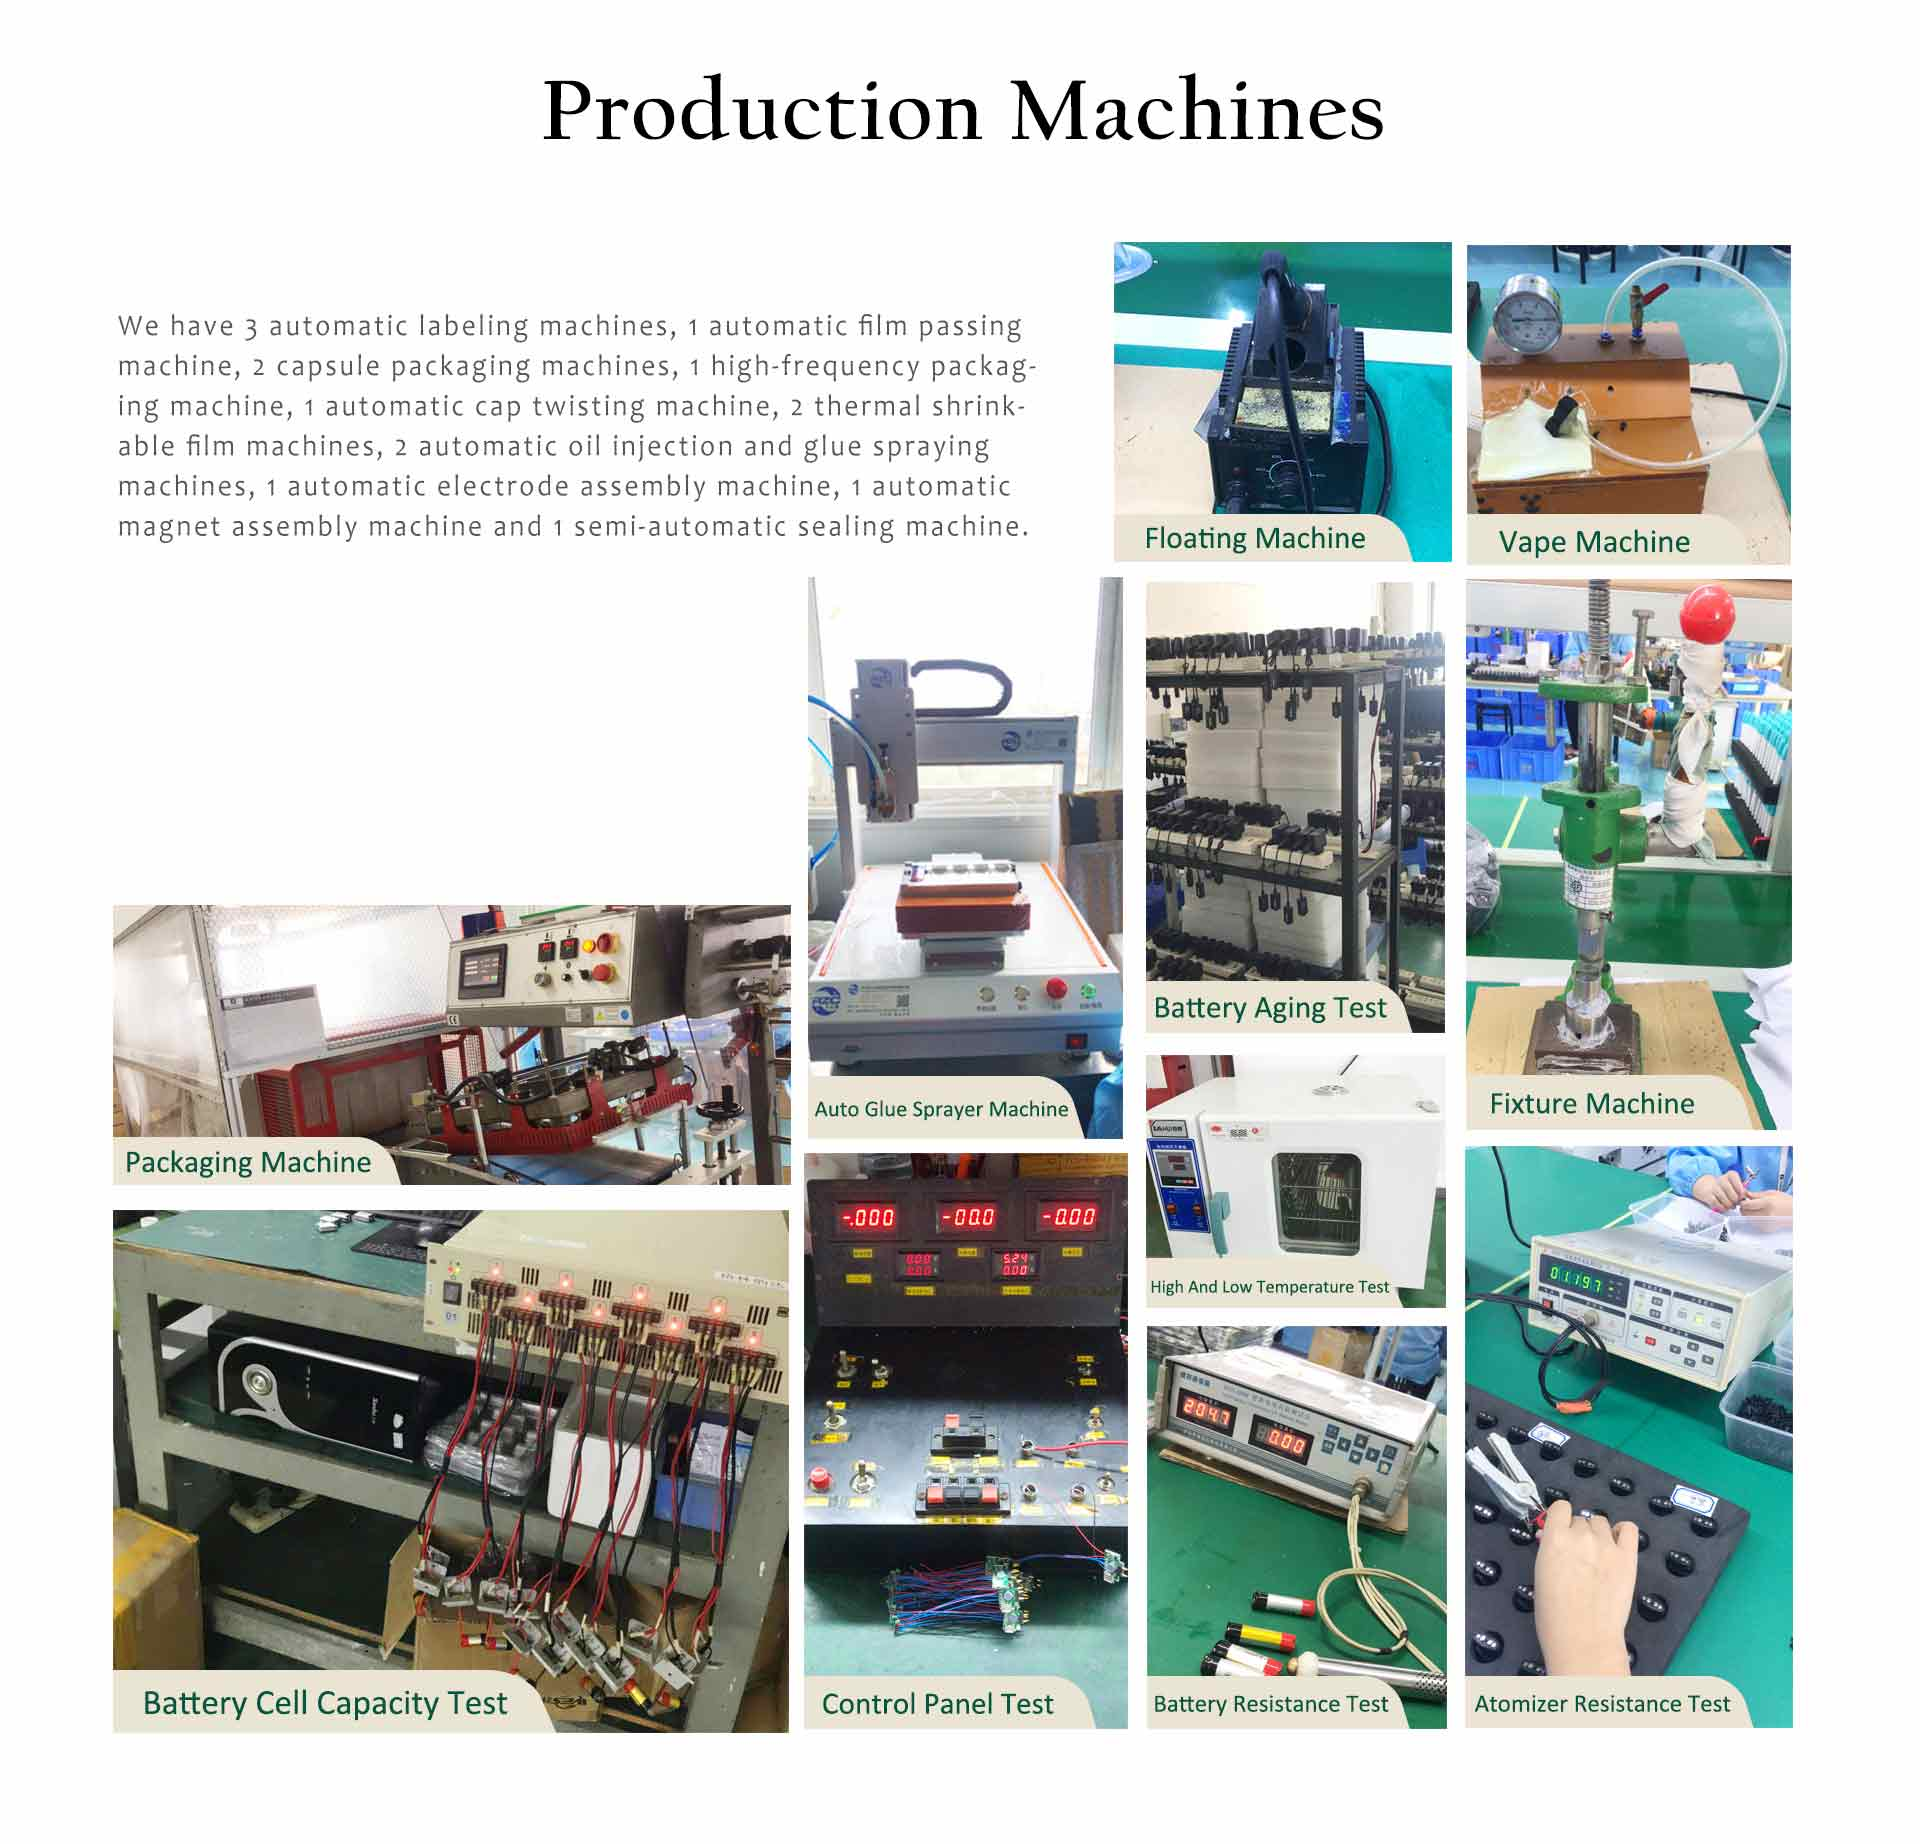 veiik production machines